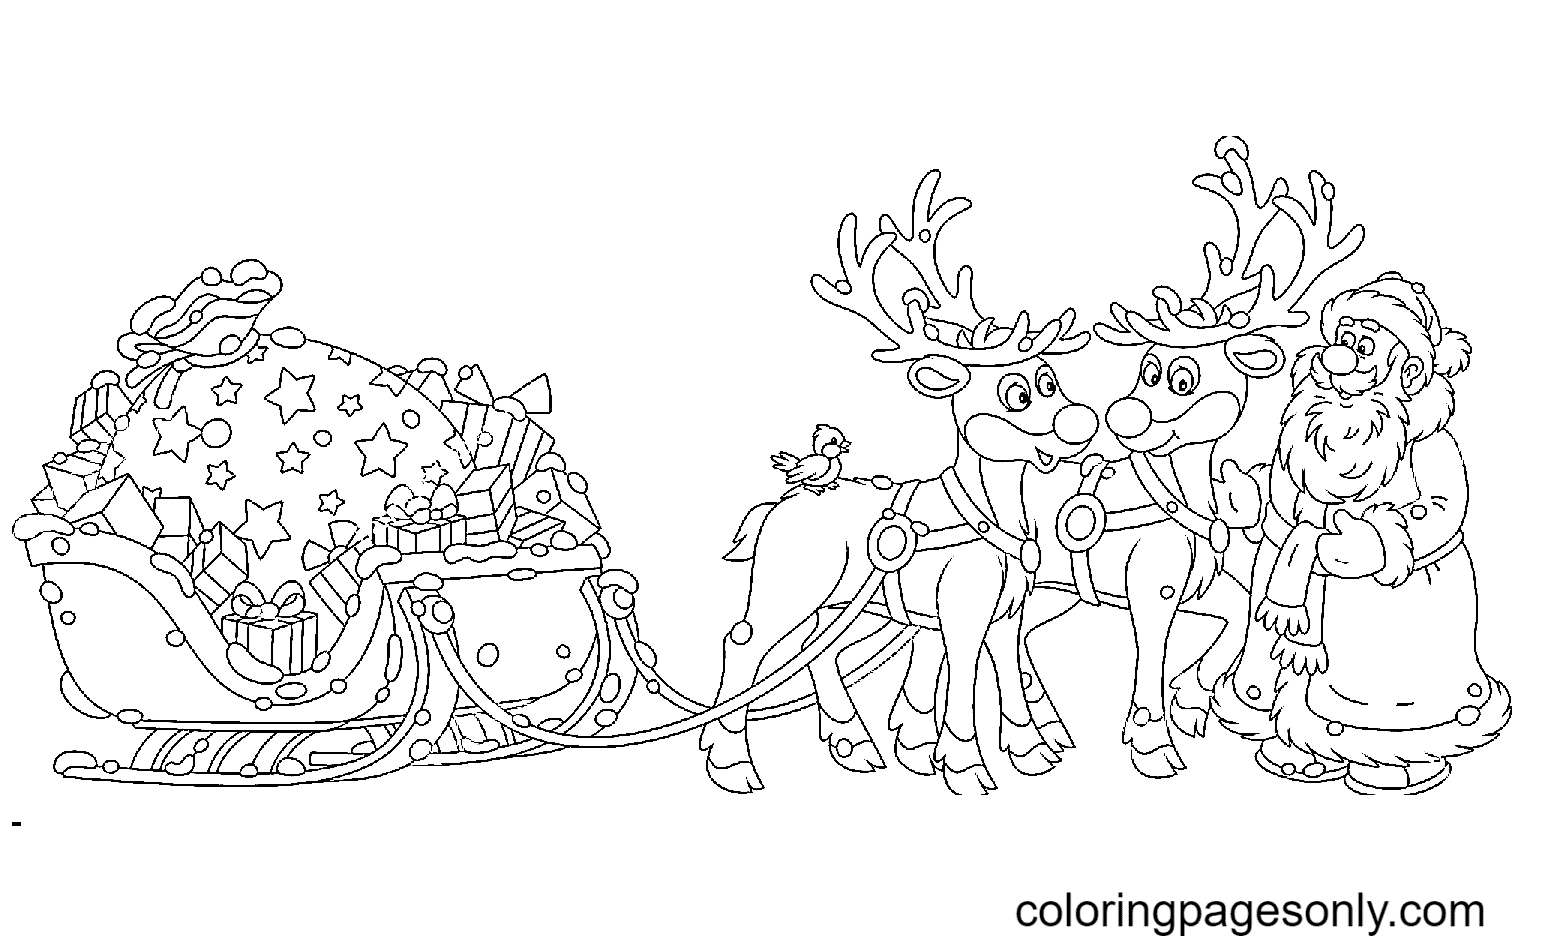 Santa Claus with Reindeer, Sleigh and Big Bag Of Gifts Coloring Page